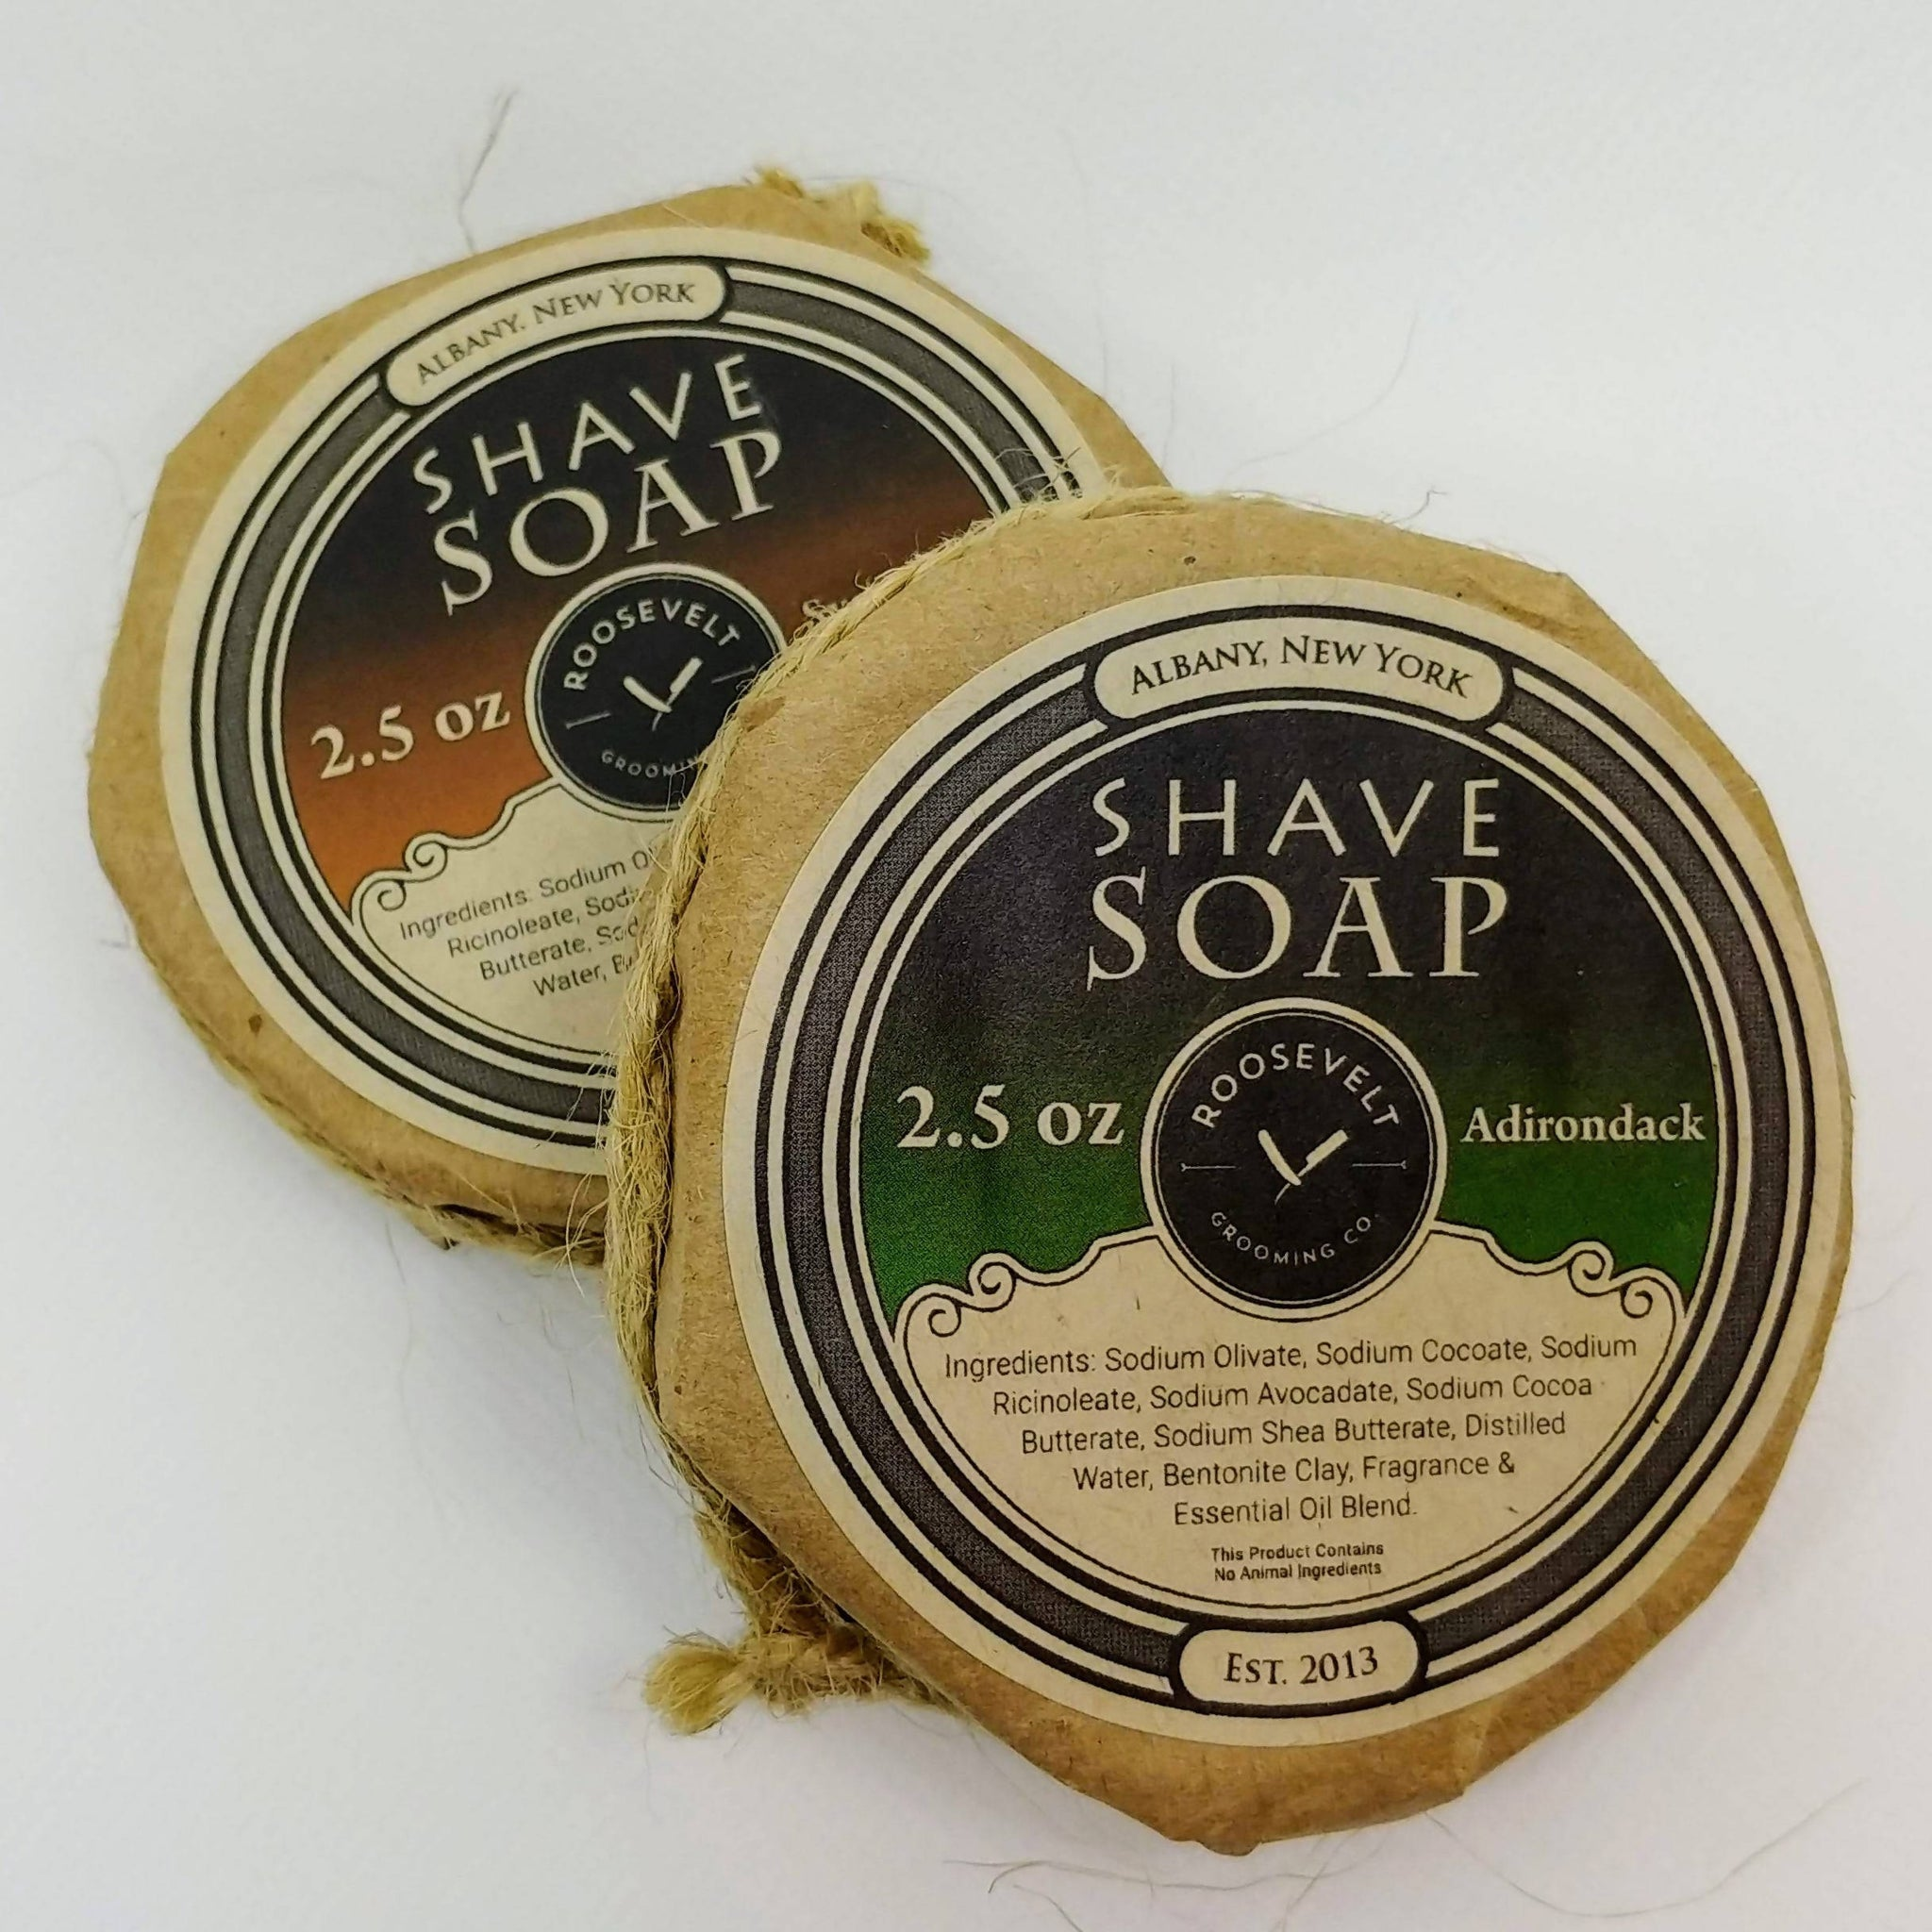 Shaving Soap - Handcrafted & All Natural with Amazing Lather